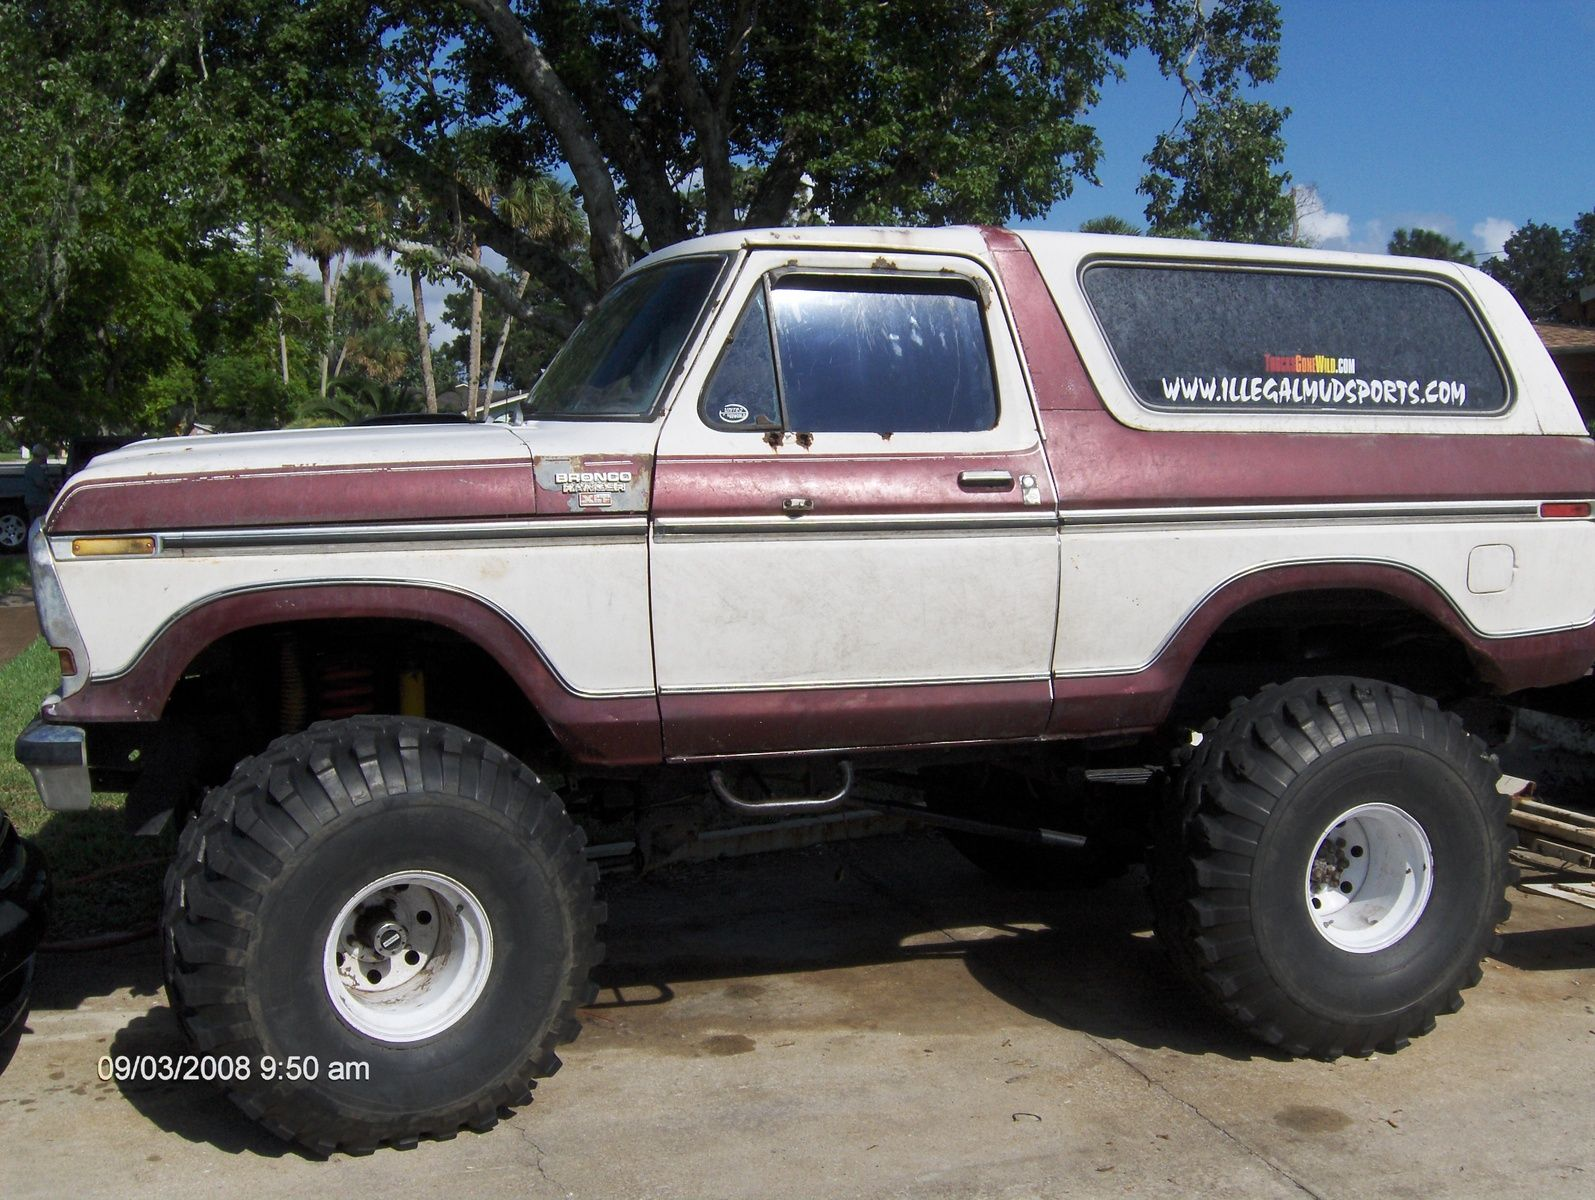 Diesel ford bronco for sale - 1979 Ford Bronco Pictures See 128 Pics For 1979 Ford Bronco Browse Interior And Exterior Photos For 1979 Ford Bronco